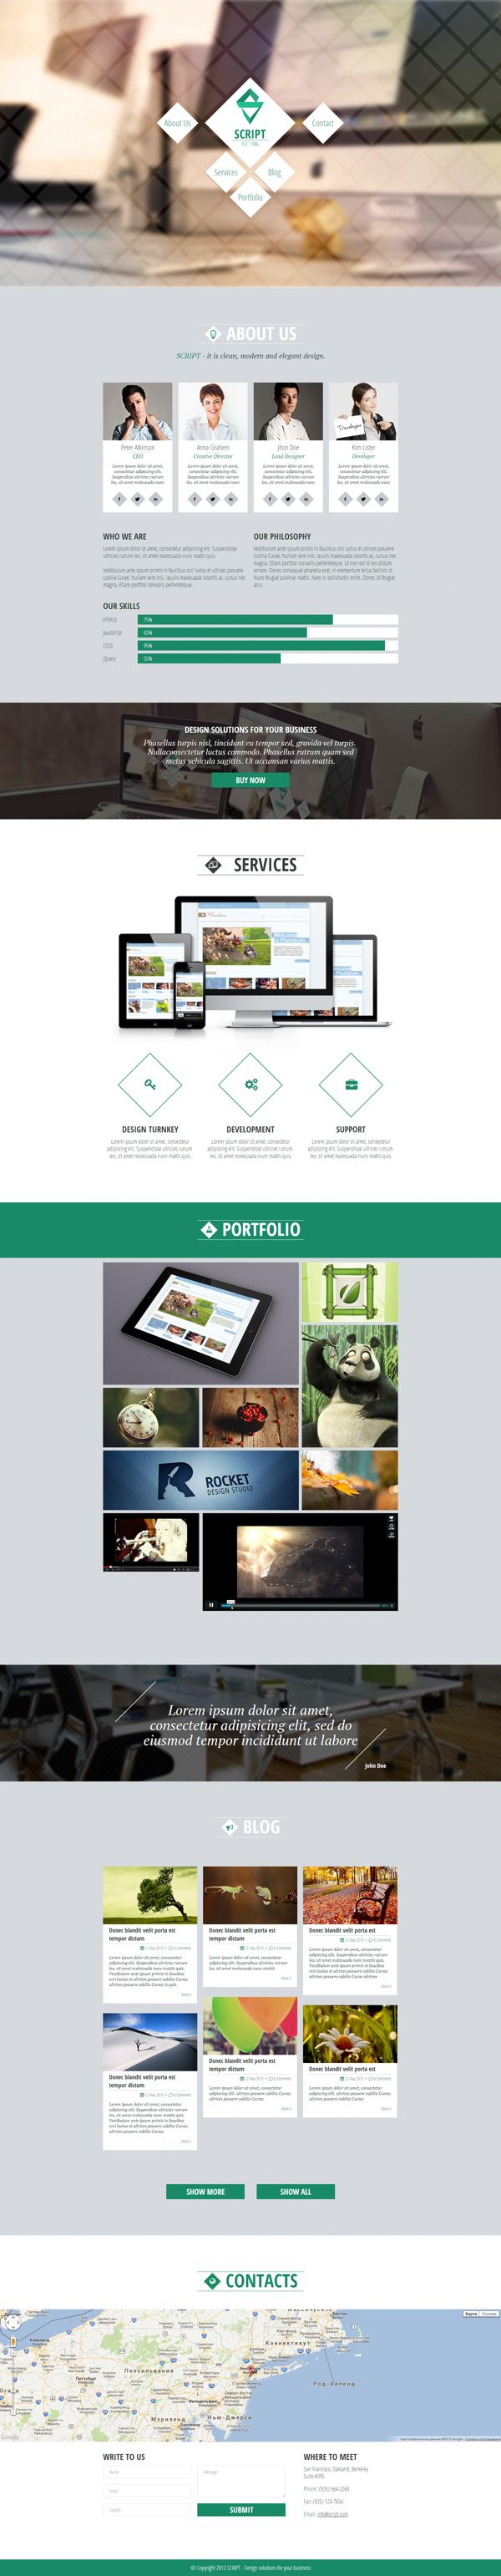 Script - HTML5 One Page Template by Zizaza - design ocean , via Behance | #webdesign #it #web #design #layout #userinterface #website #webdesign < repinned by www.BlickeDeeler.de | Take a look at www.WebsiteDesign-Hamburg.de